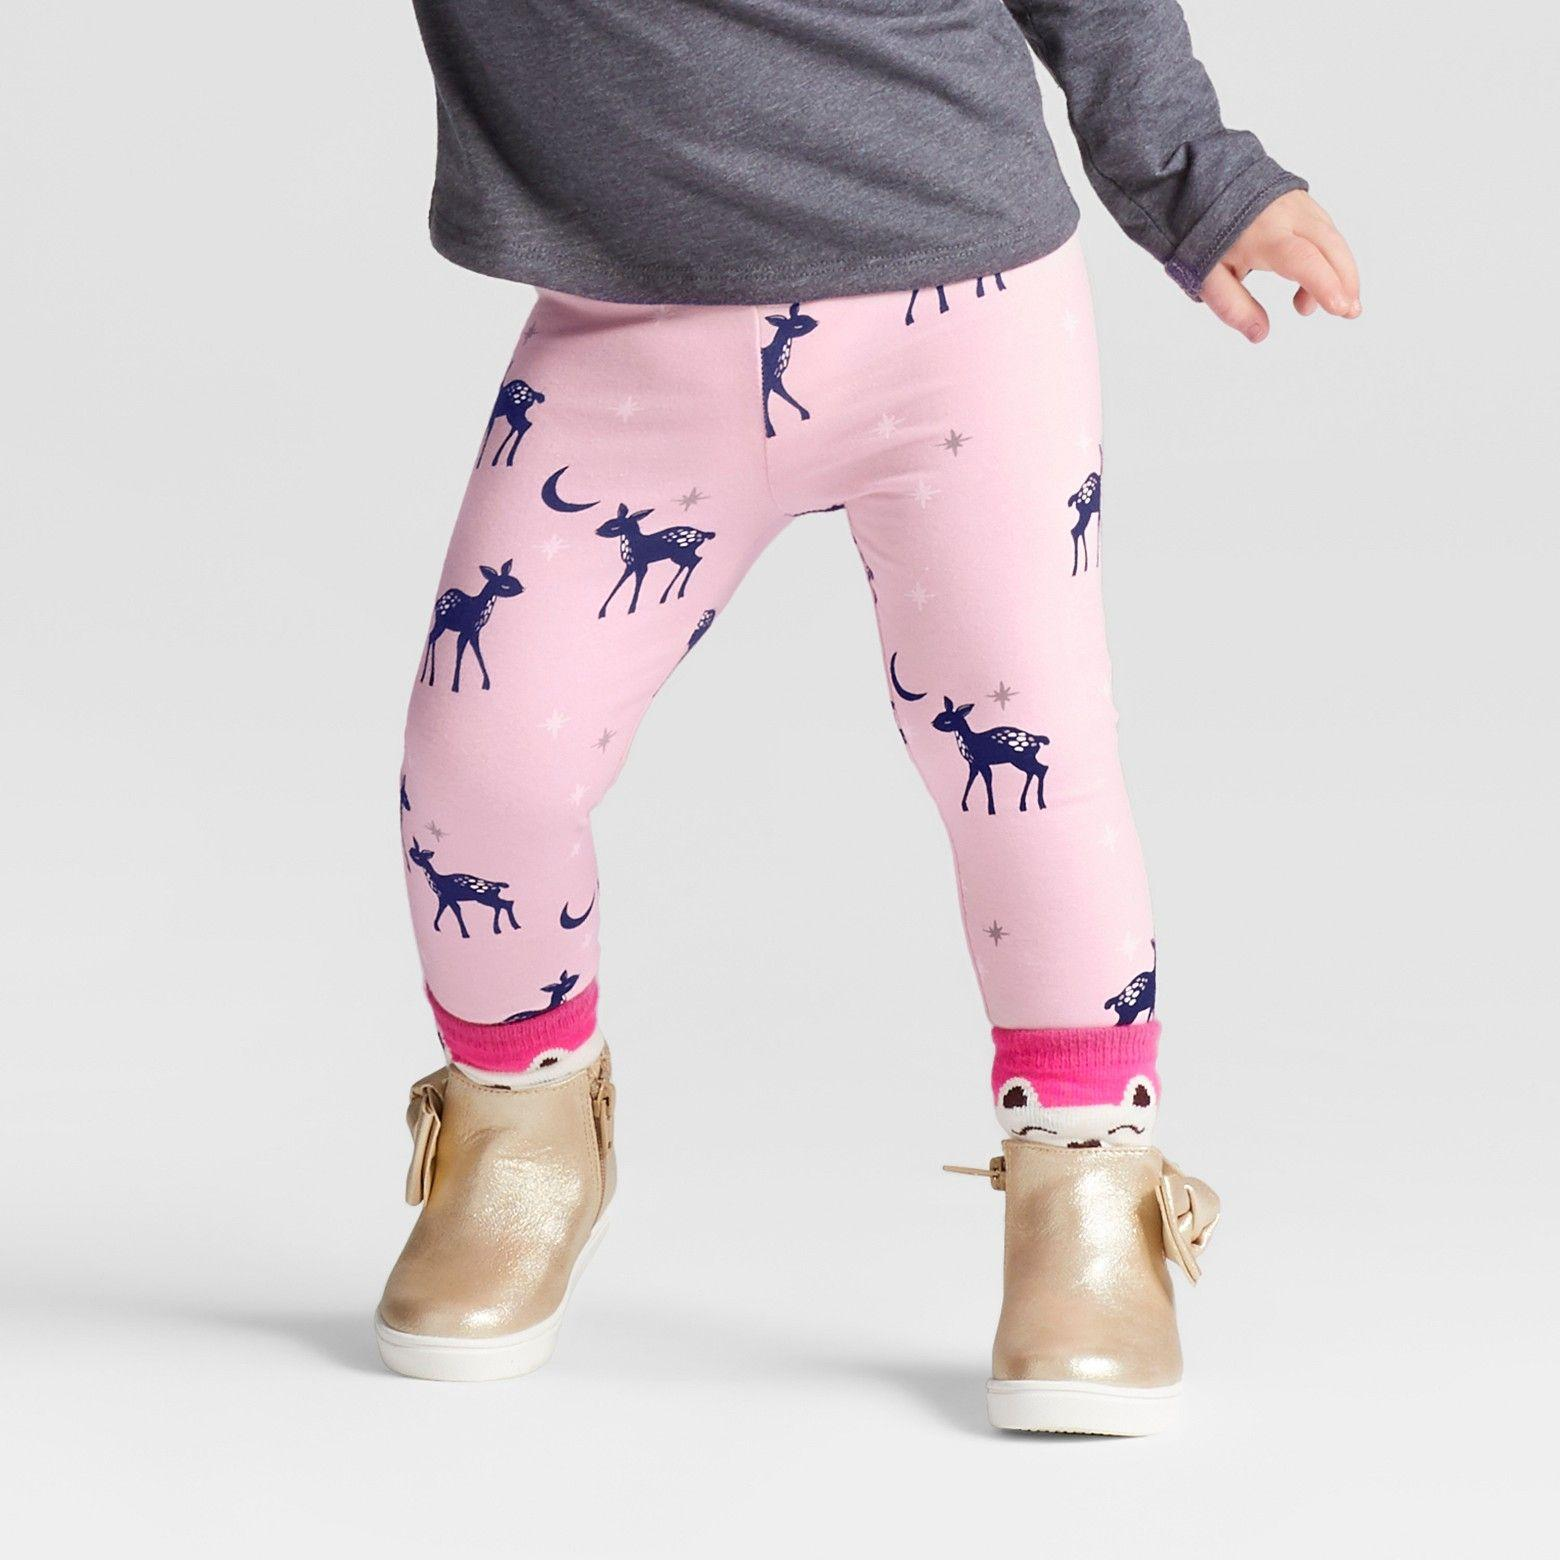 79e59122b Girls Clothing for sale - Girls Casual Clothes Online Deals & Prices ...